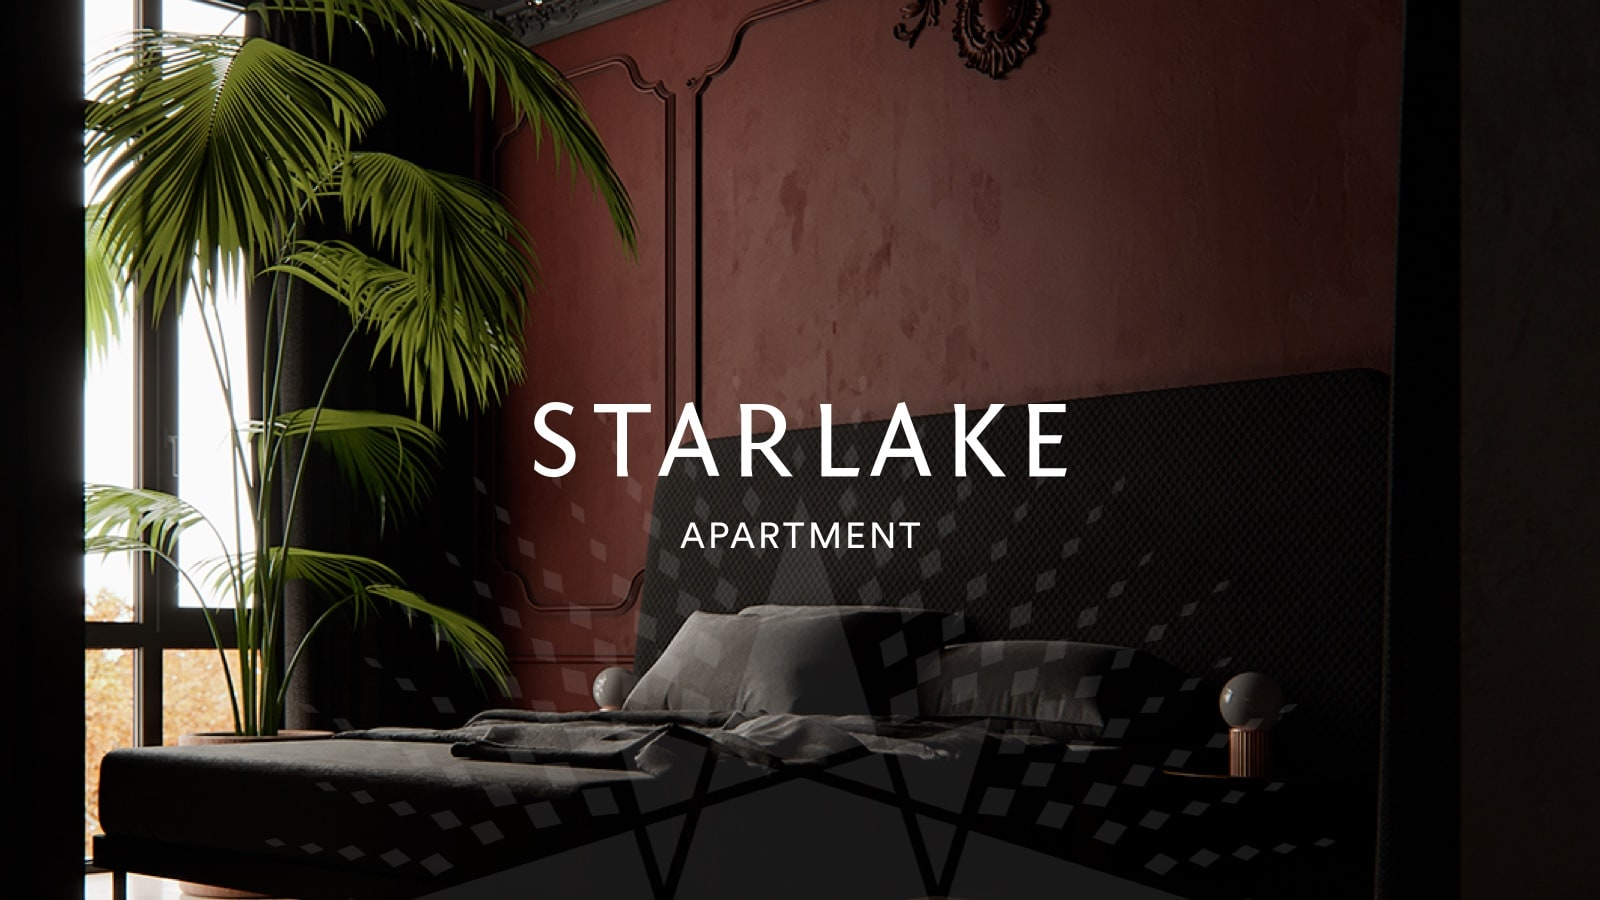 Starlake Apartment